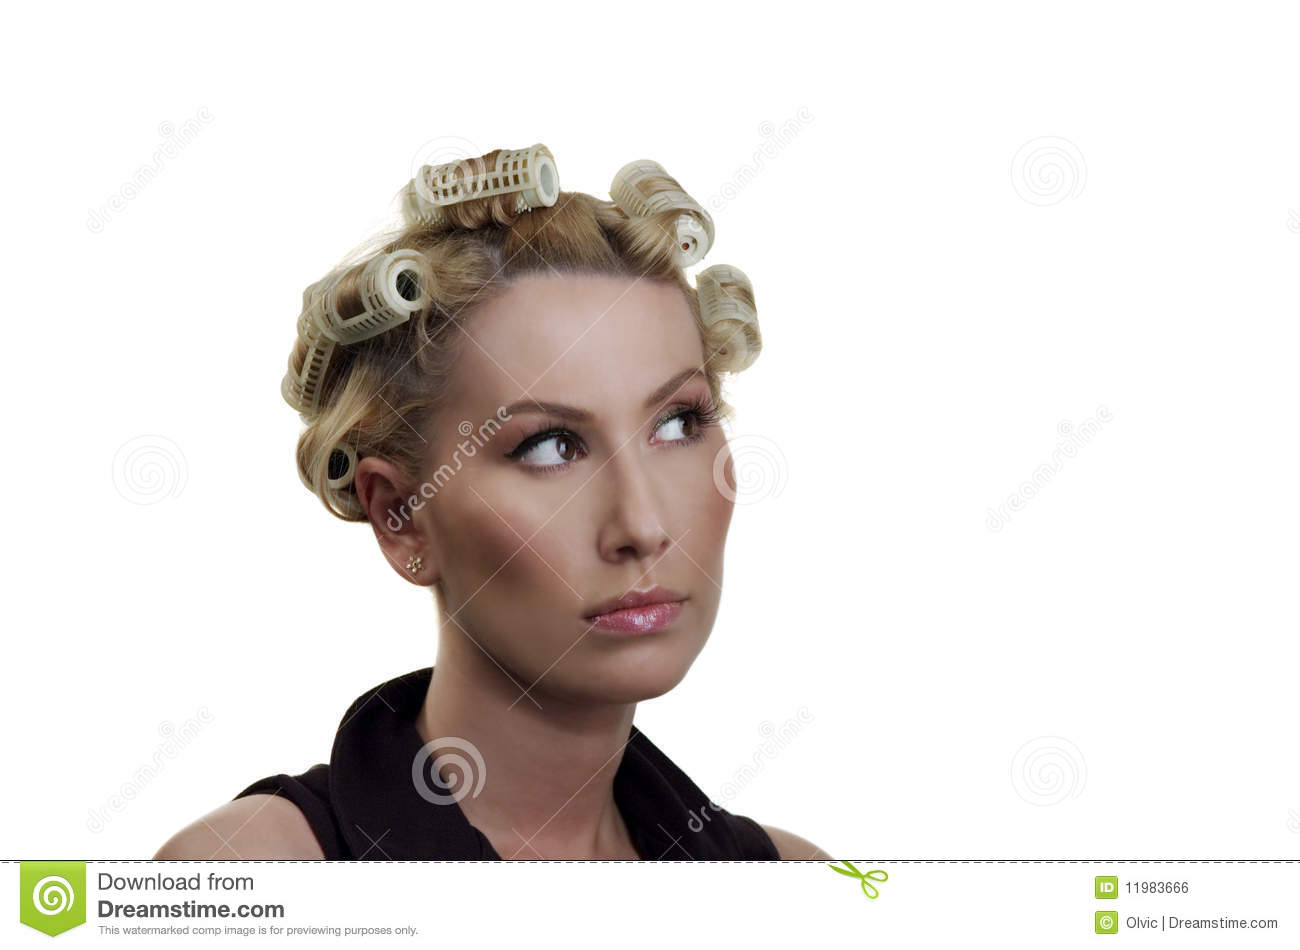 The Girl About Hair Curlers Royalty Free Stock Image - Image: 11983666